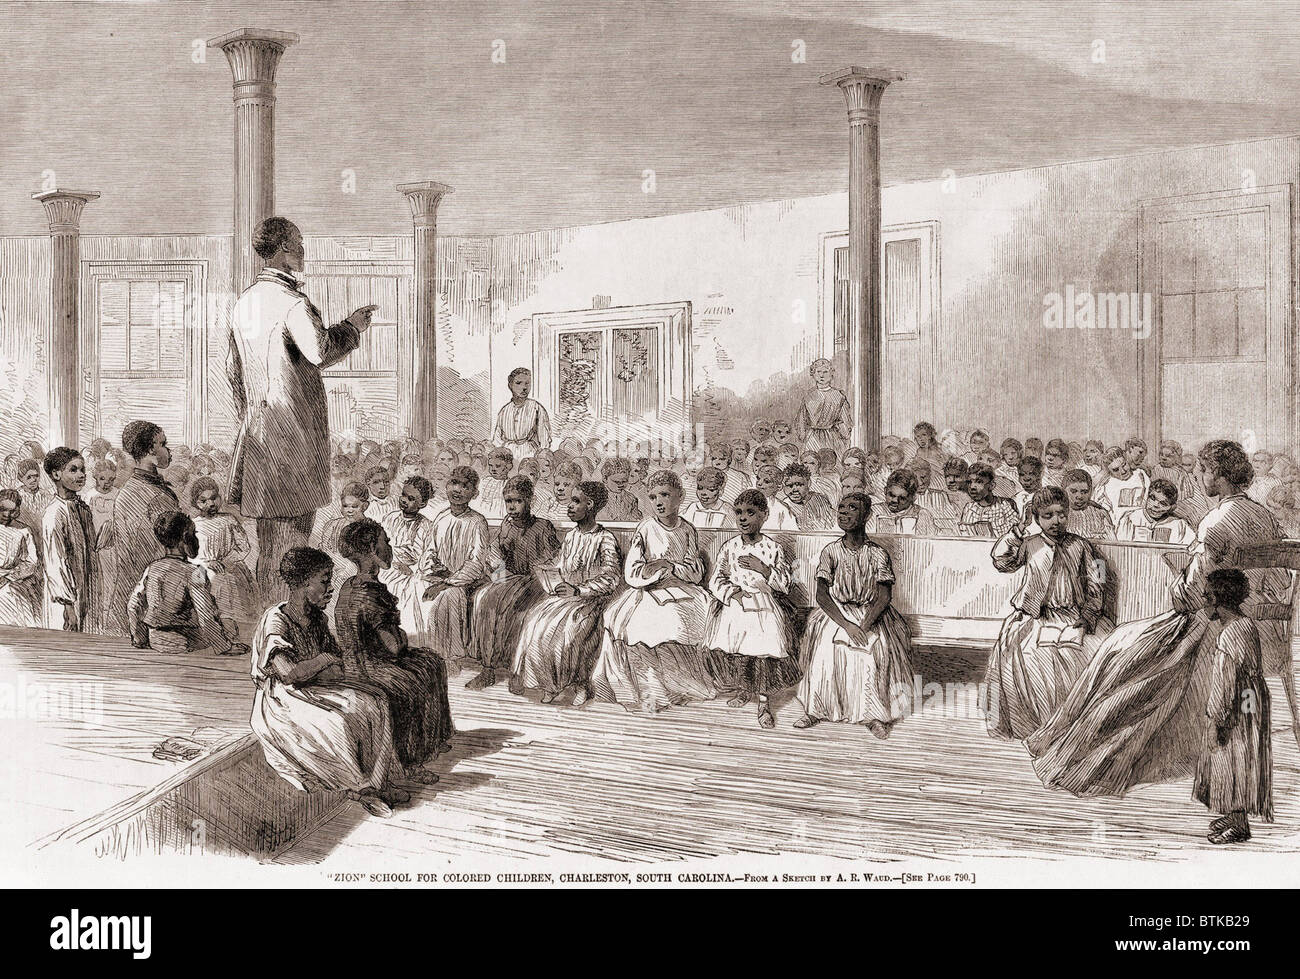 1866 classroom of 'Zion' school for African American children born into  slavery children, Charleston, South Carolina in 1866. Prior to the Civil  War, ...